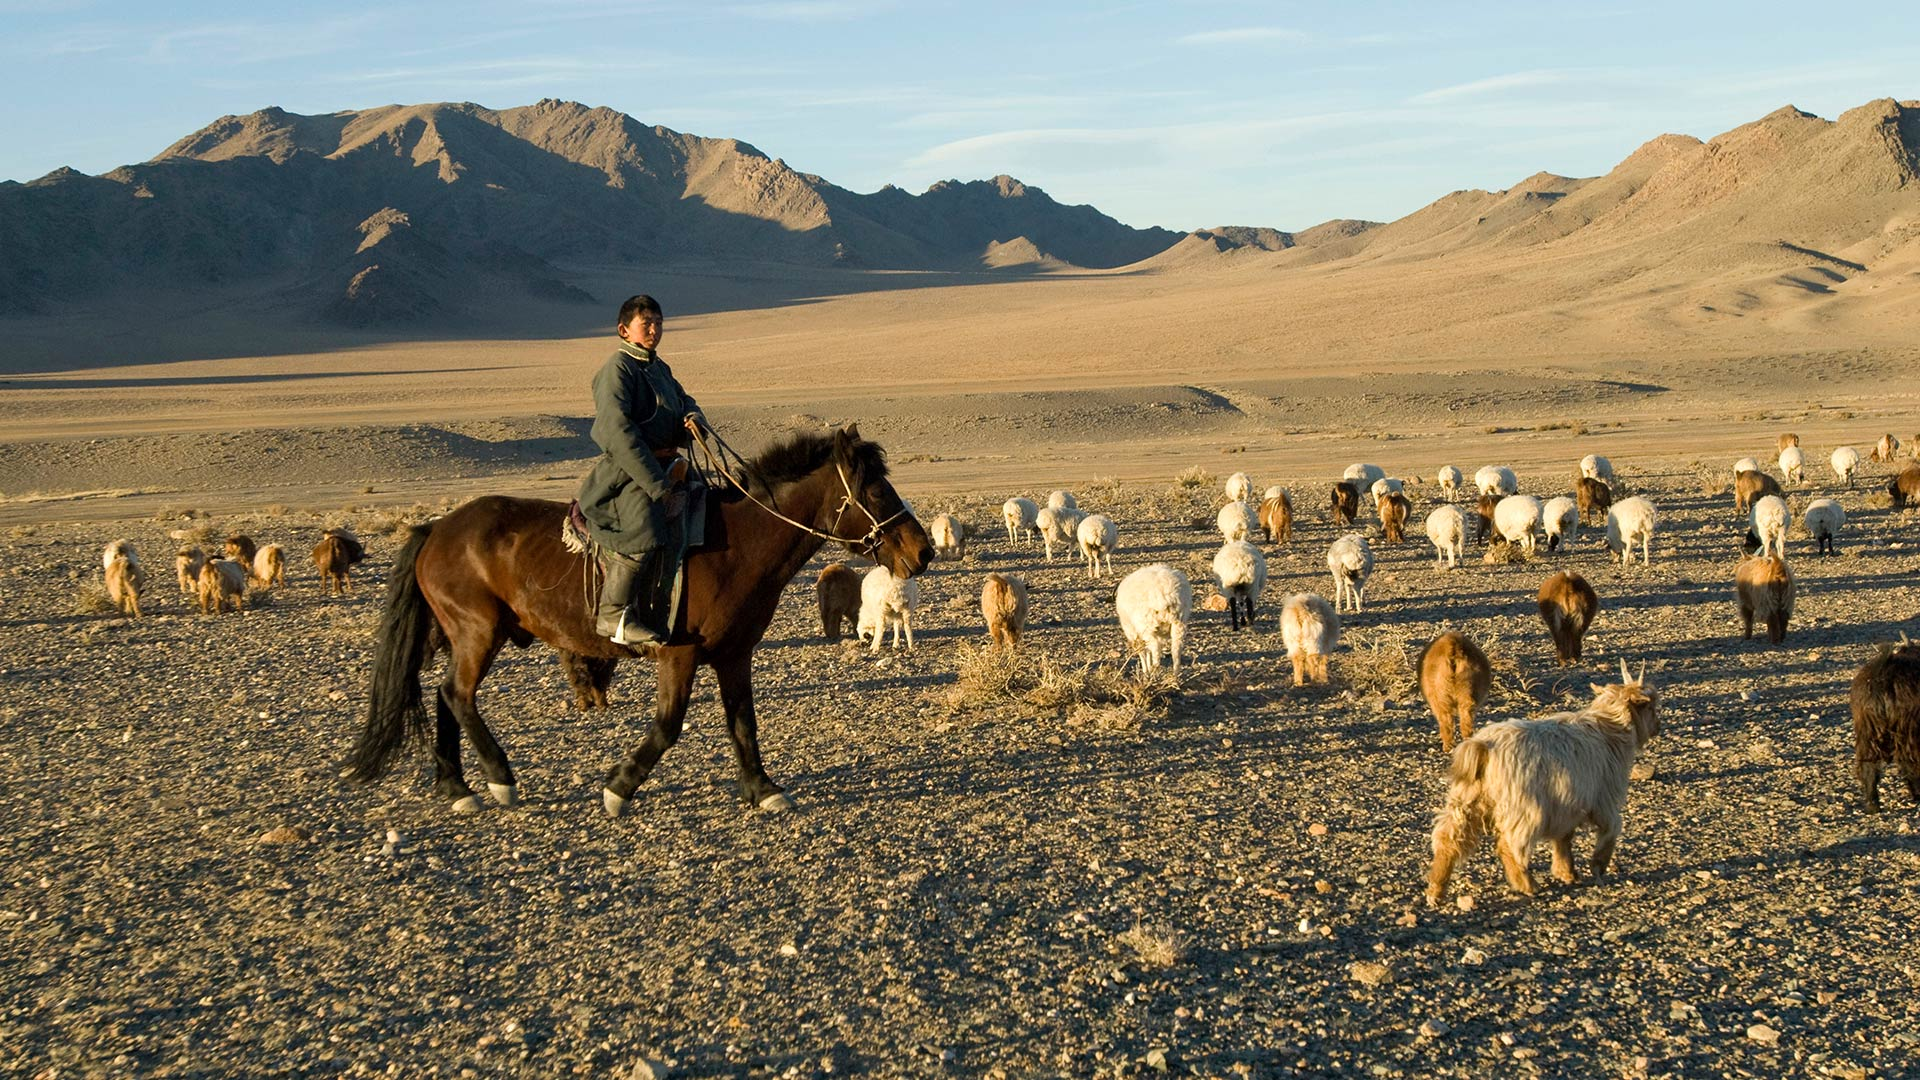 Nomad boy herding cattle in Mongolia